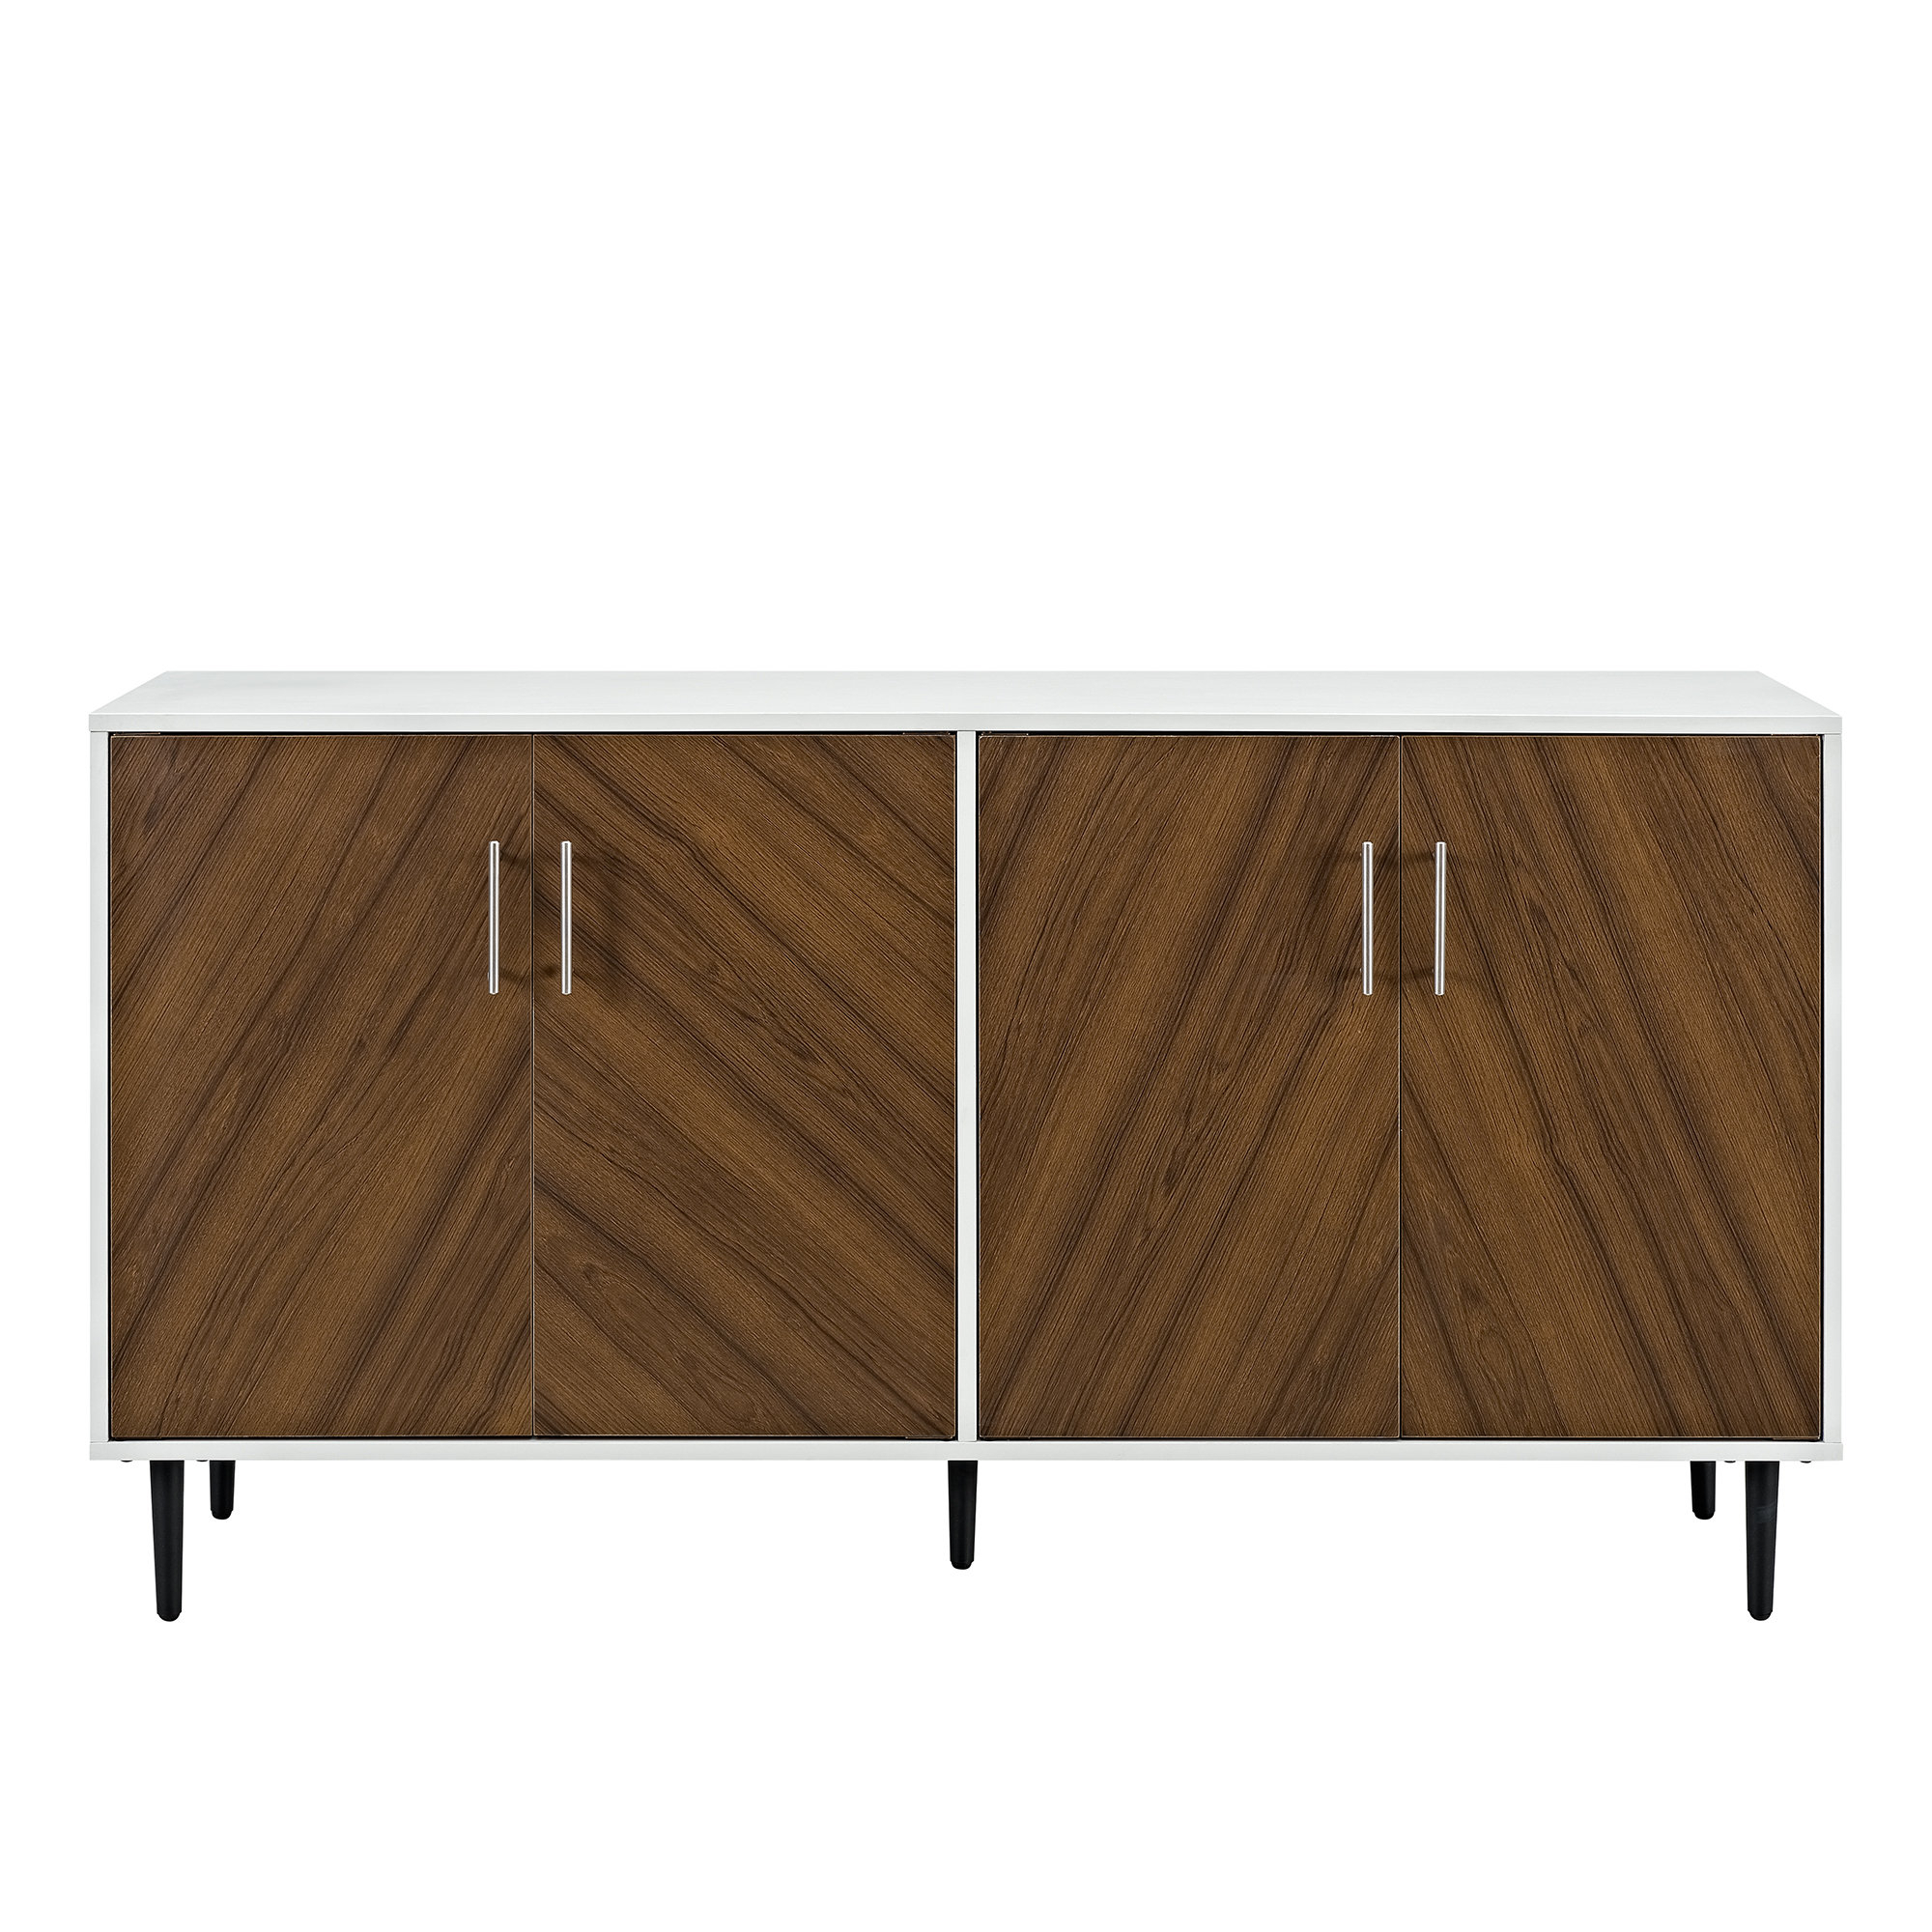 Modern & Contemporary Kitchen Sideboard | Allmodern Within Jacklyn 3 Door Sideboards (View 14 of 20)